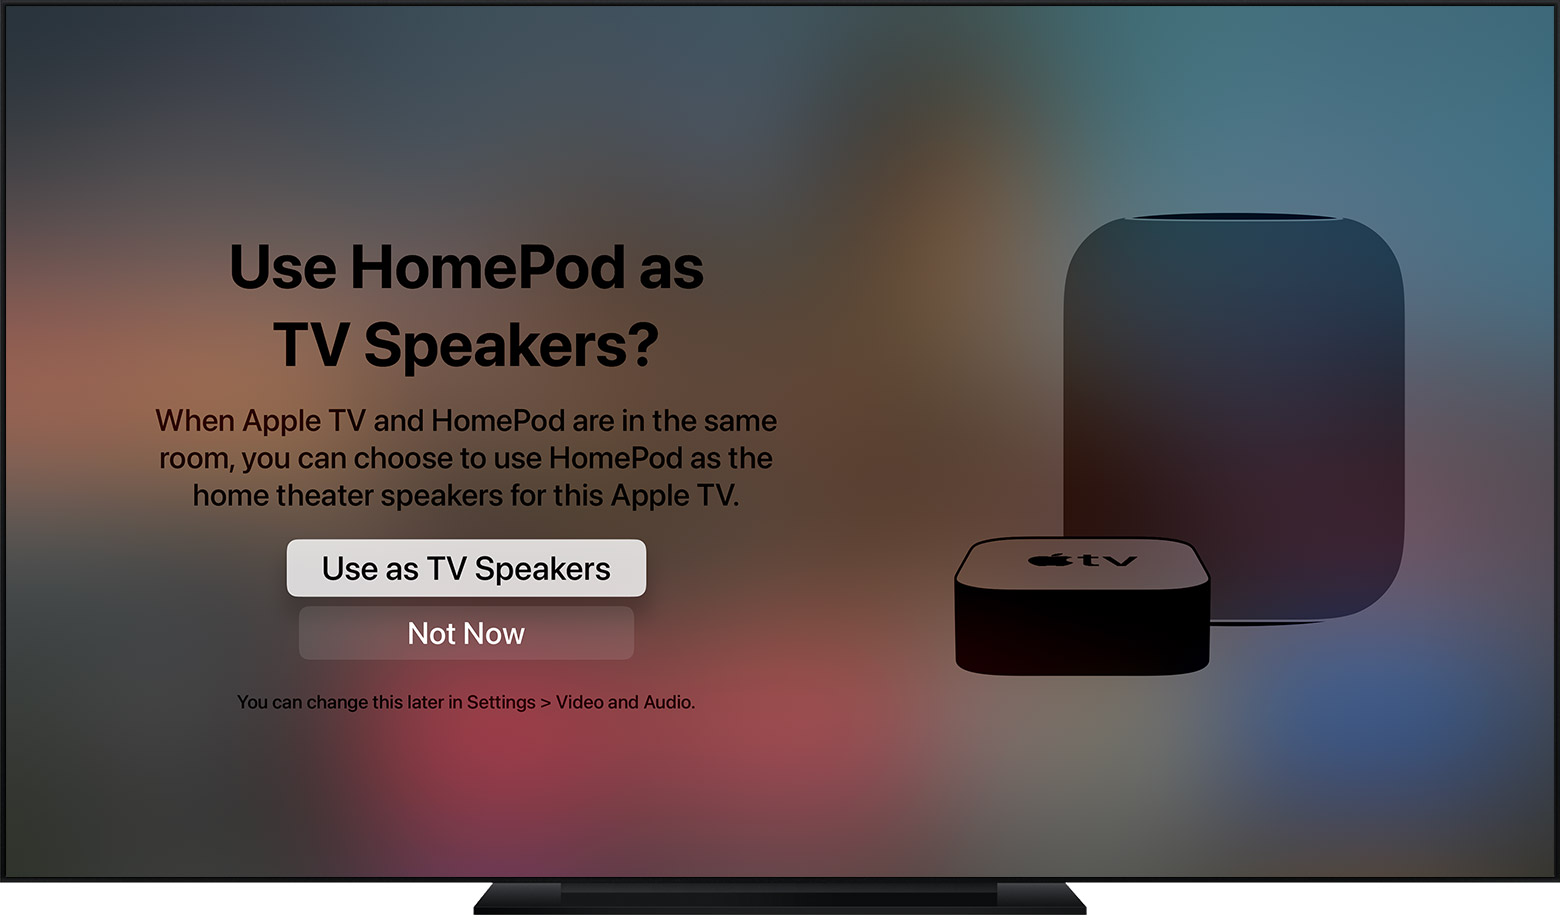 tvOS screenshot showing the prompt to Use HomePod as TV Speakers.